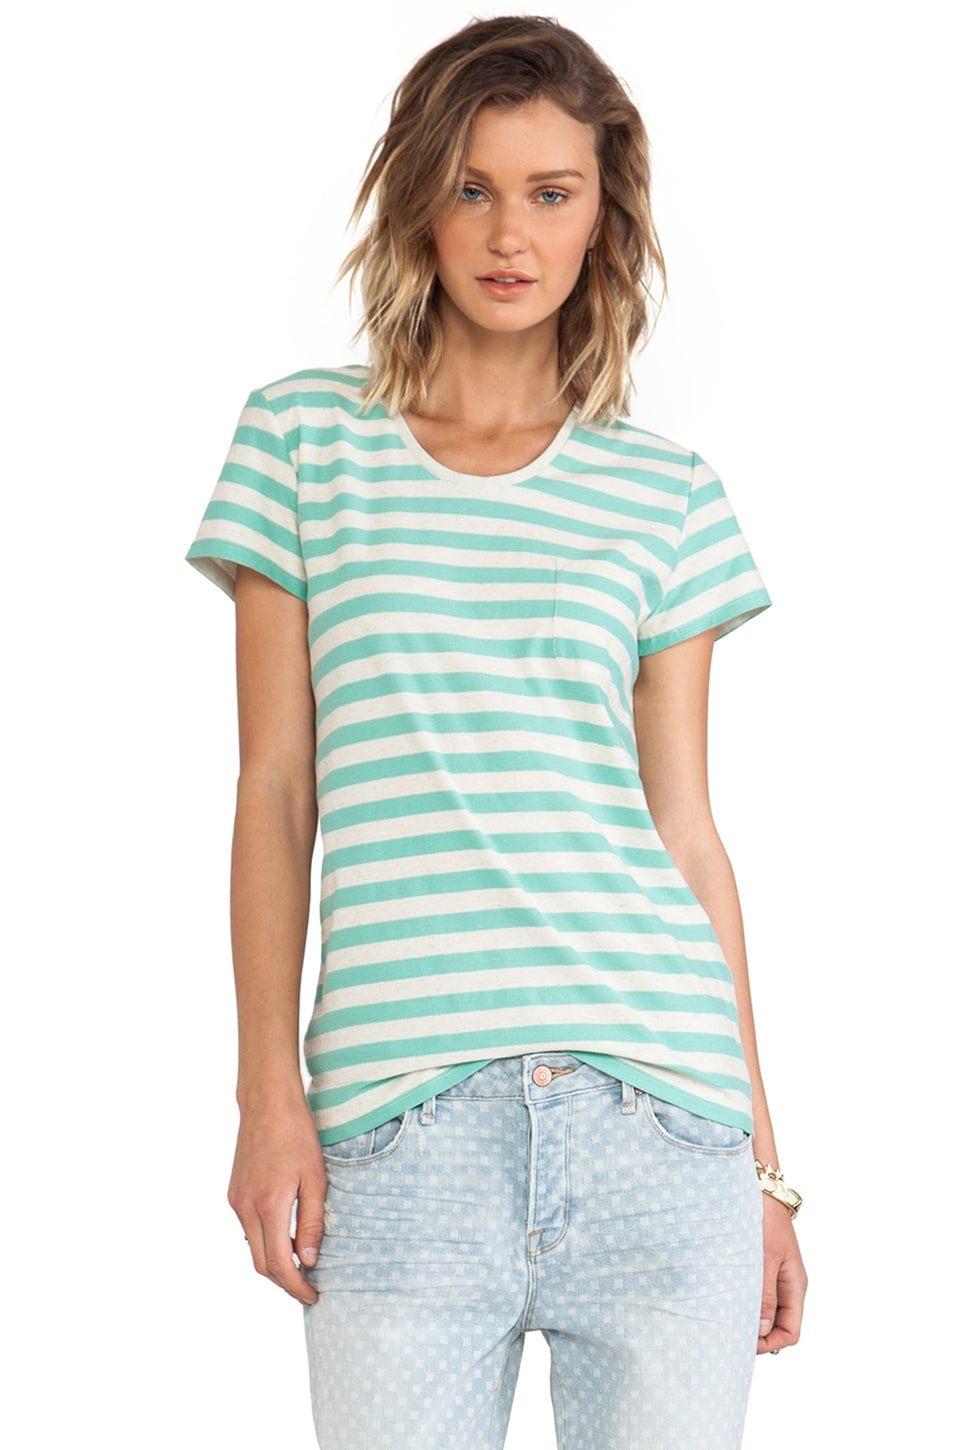 Marc by Marc Jacobs Pam Stripe Tee Multi in Dusty Jade Green